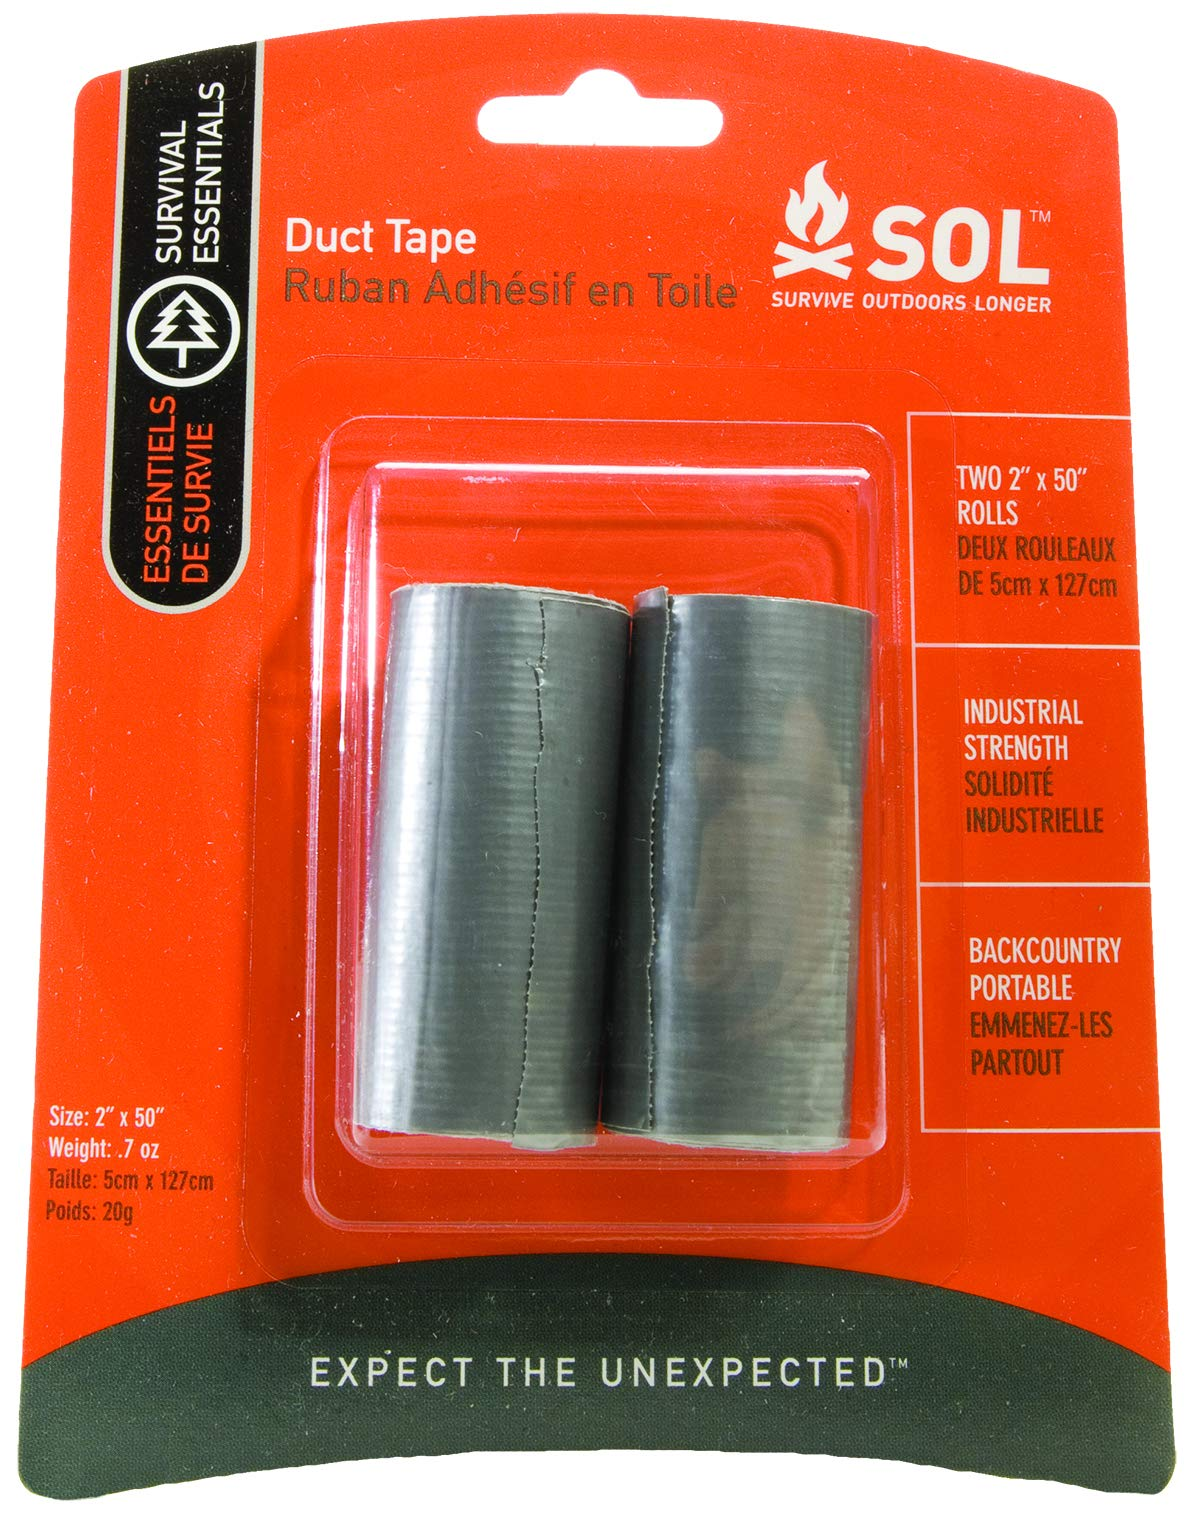 S.O.L. Survive Outdoors Longer 50'' Duct Tape, 4 Packs of 2 Rolls